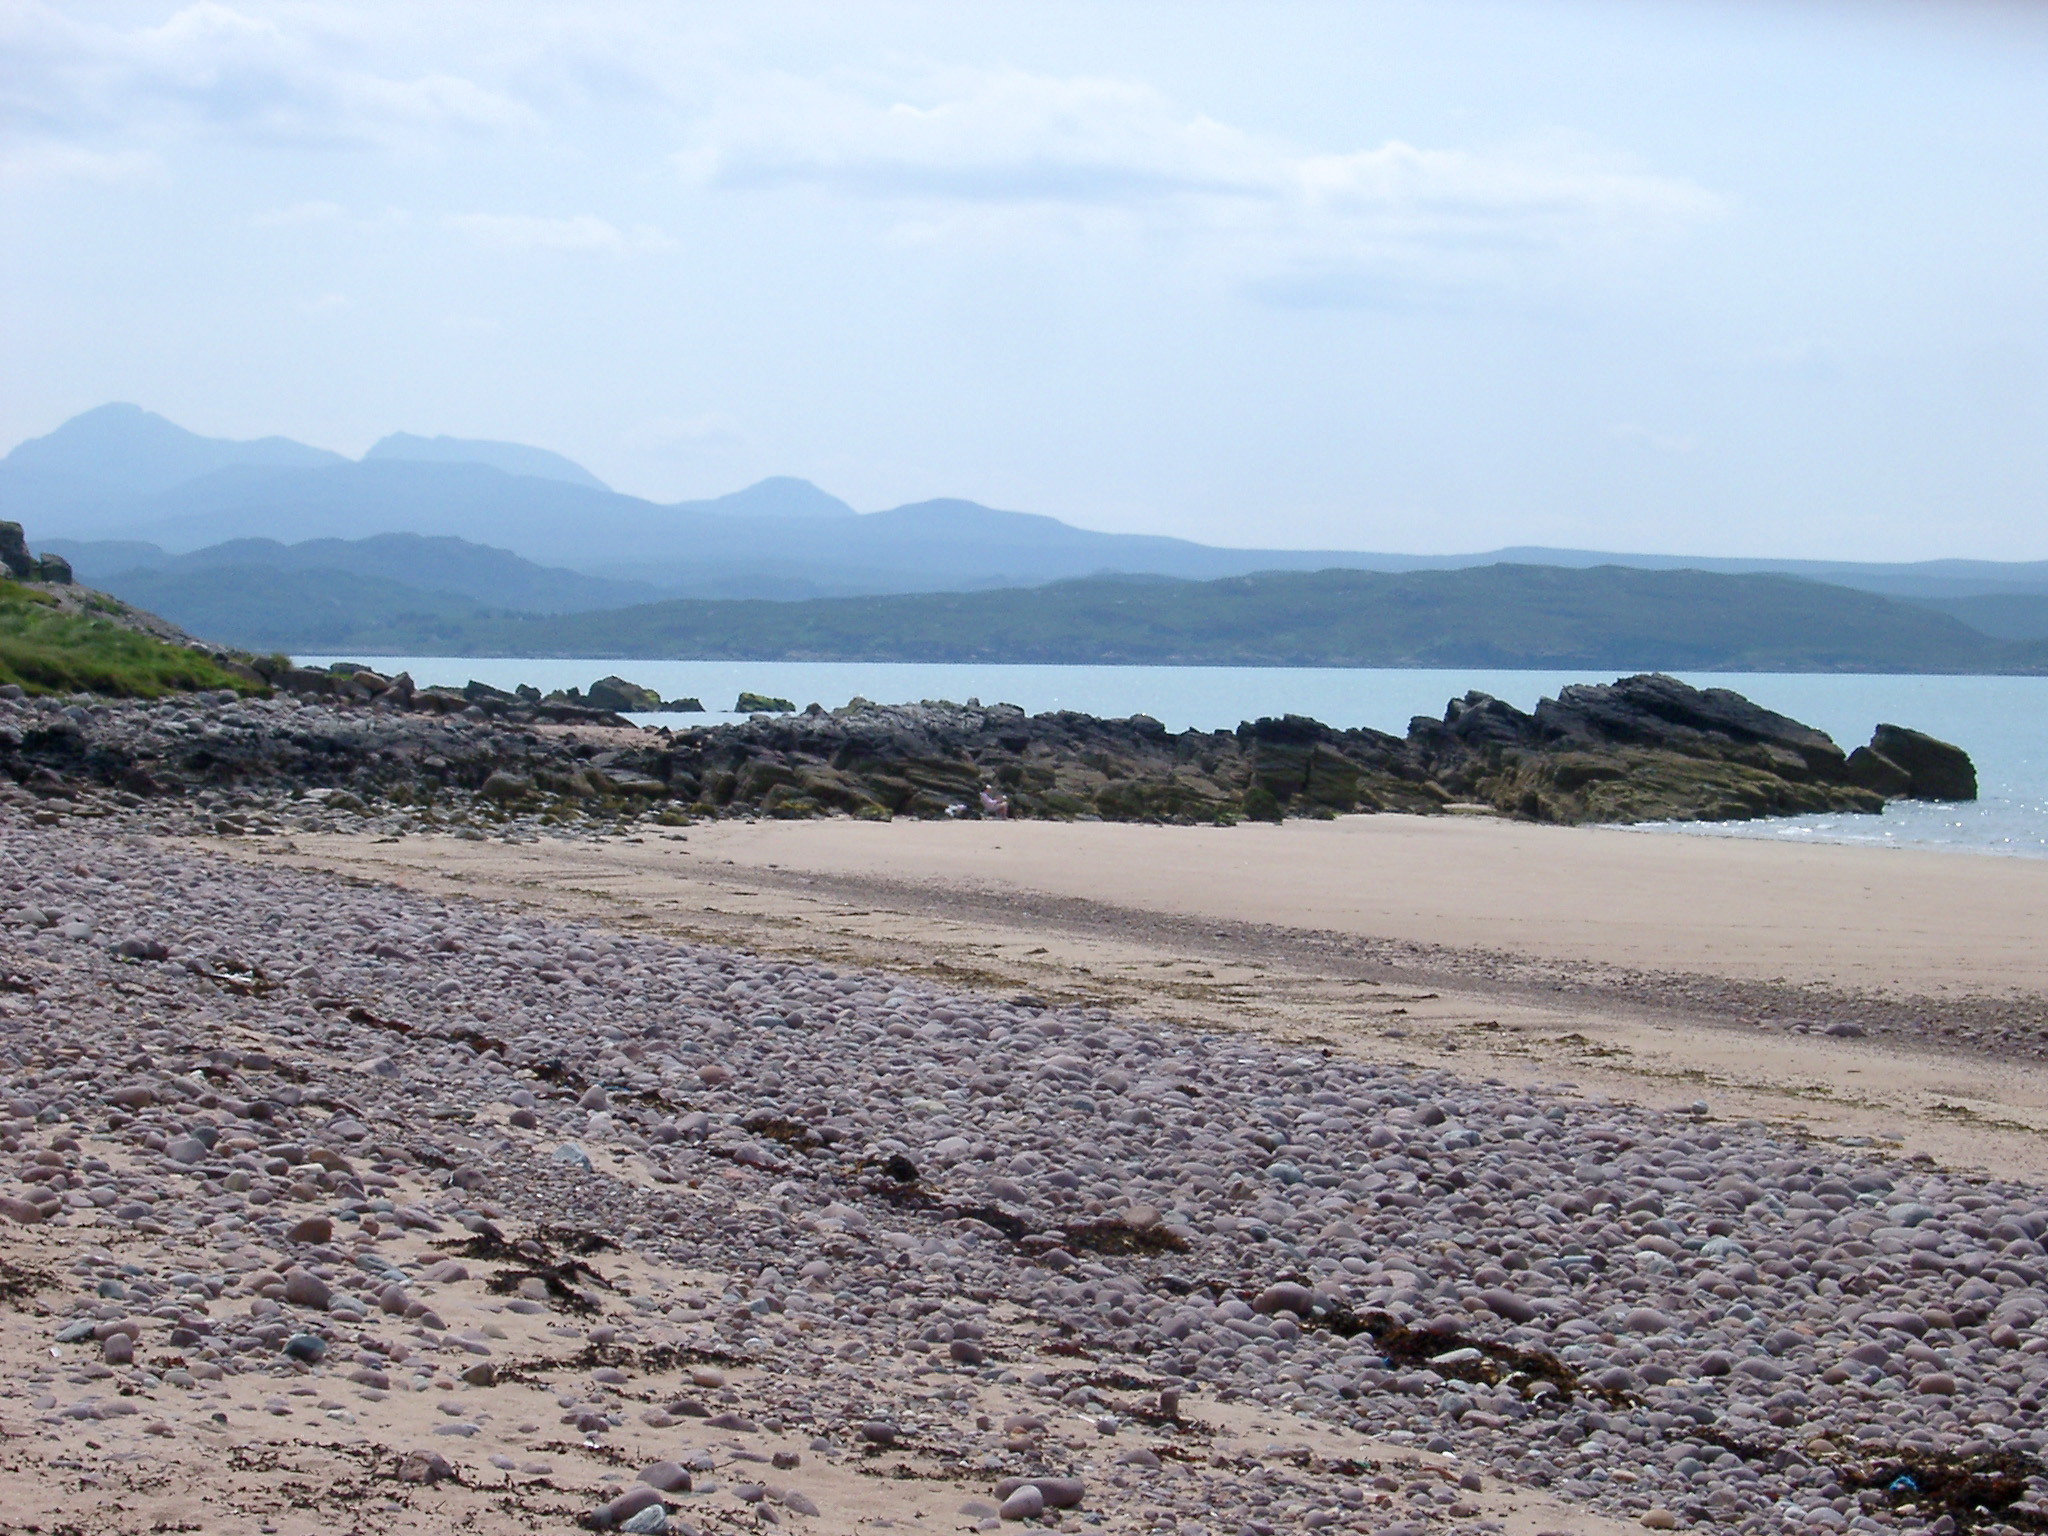 Scottish beach landscape at Gairloch with golden sand and a rocky shoreline against a mountain backdrop on an overcast sunny day